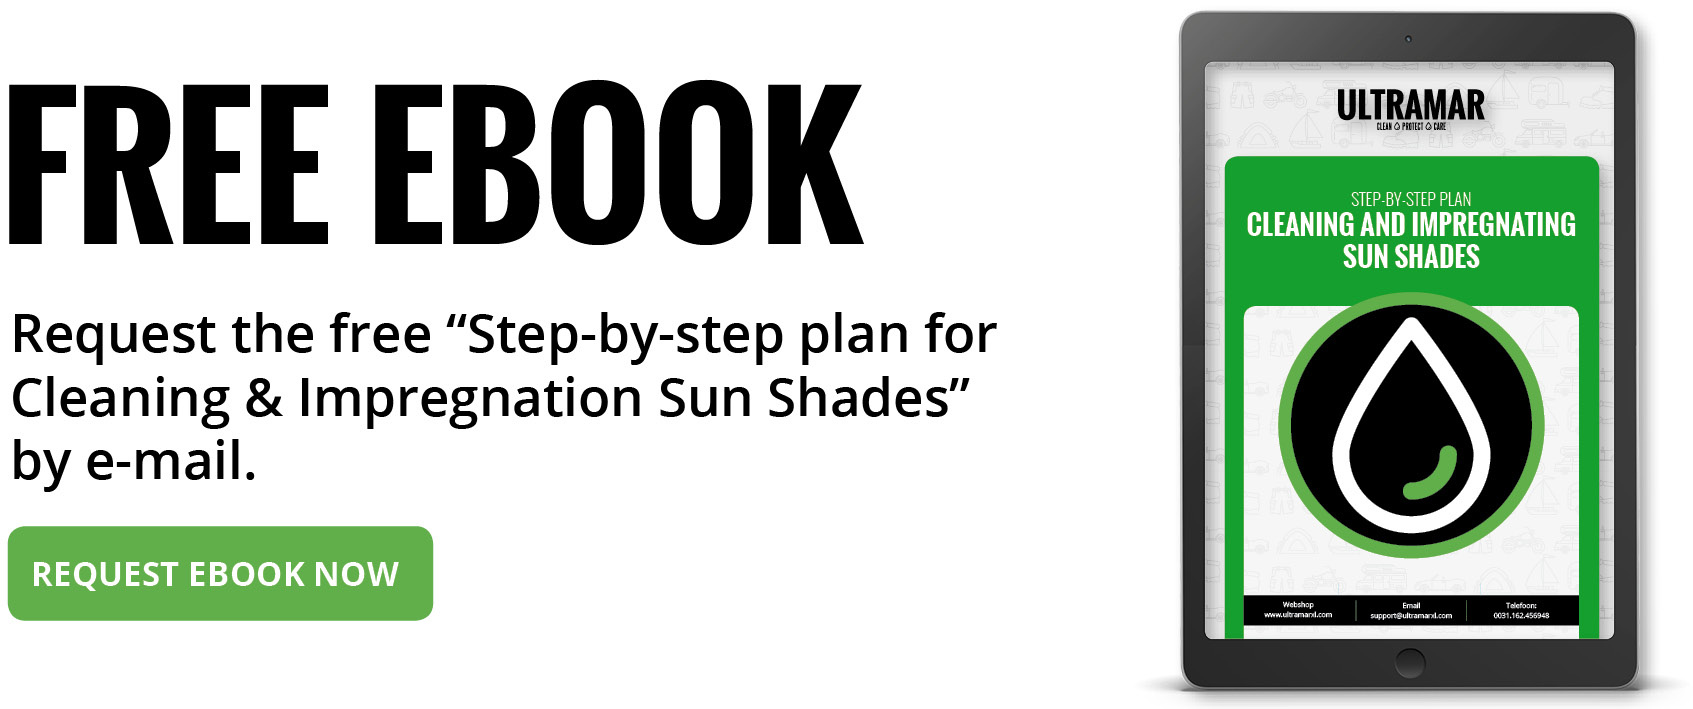 Step-by-step plan Sun Shade Cleaning and Impregnation: